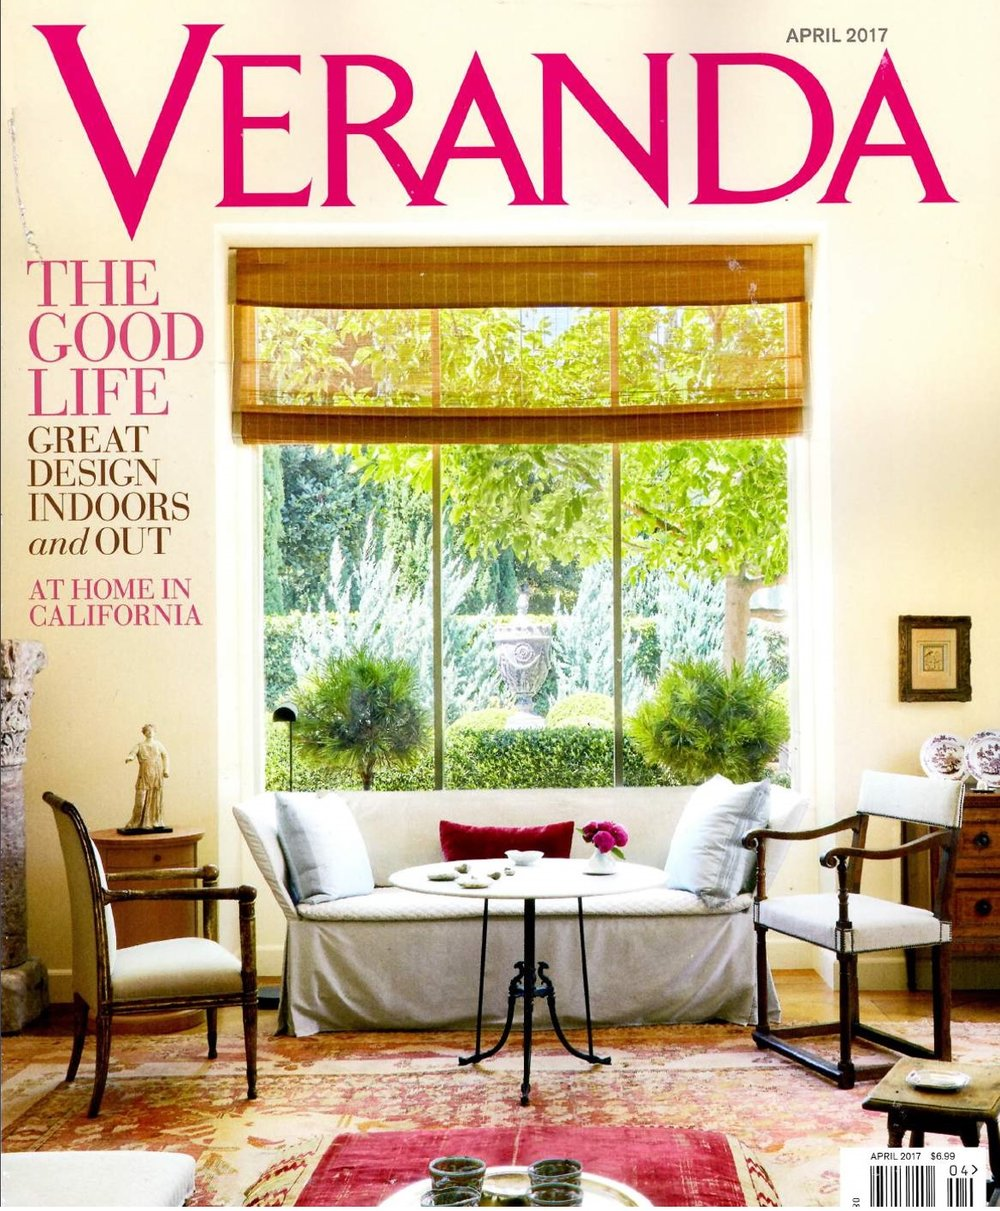 Veranda April 2017 Cover.jpg